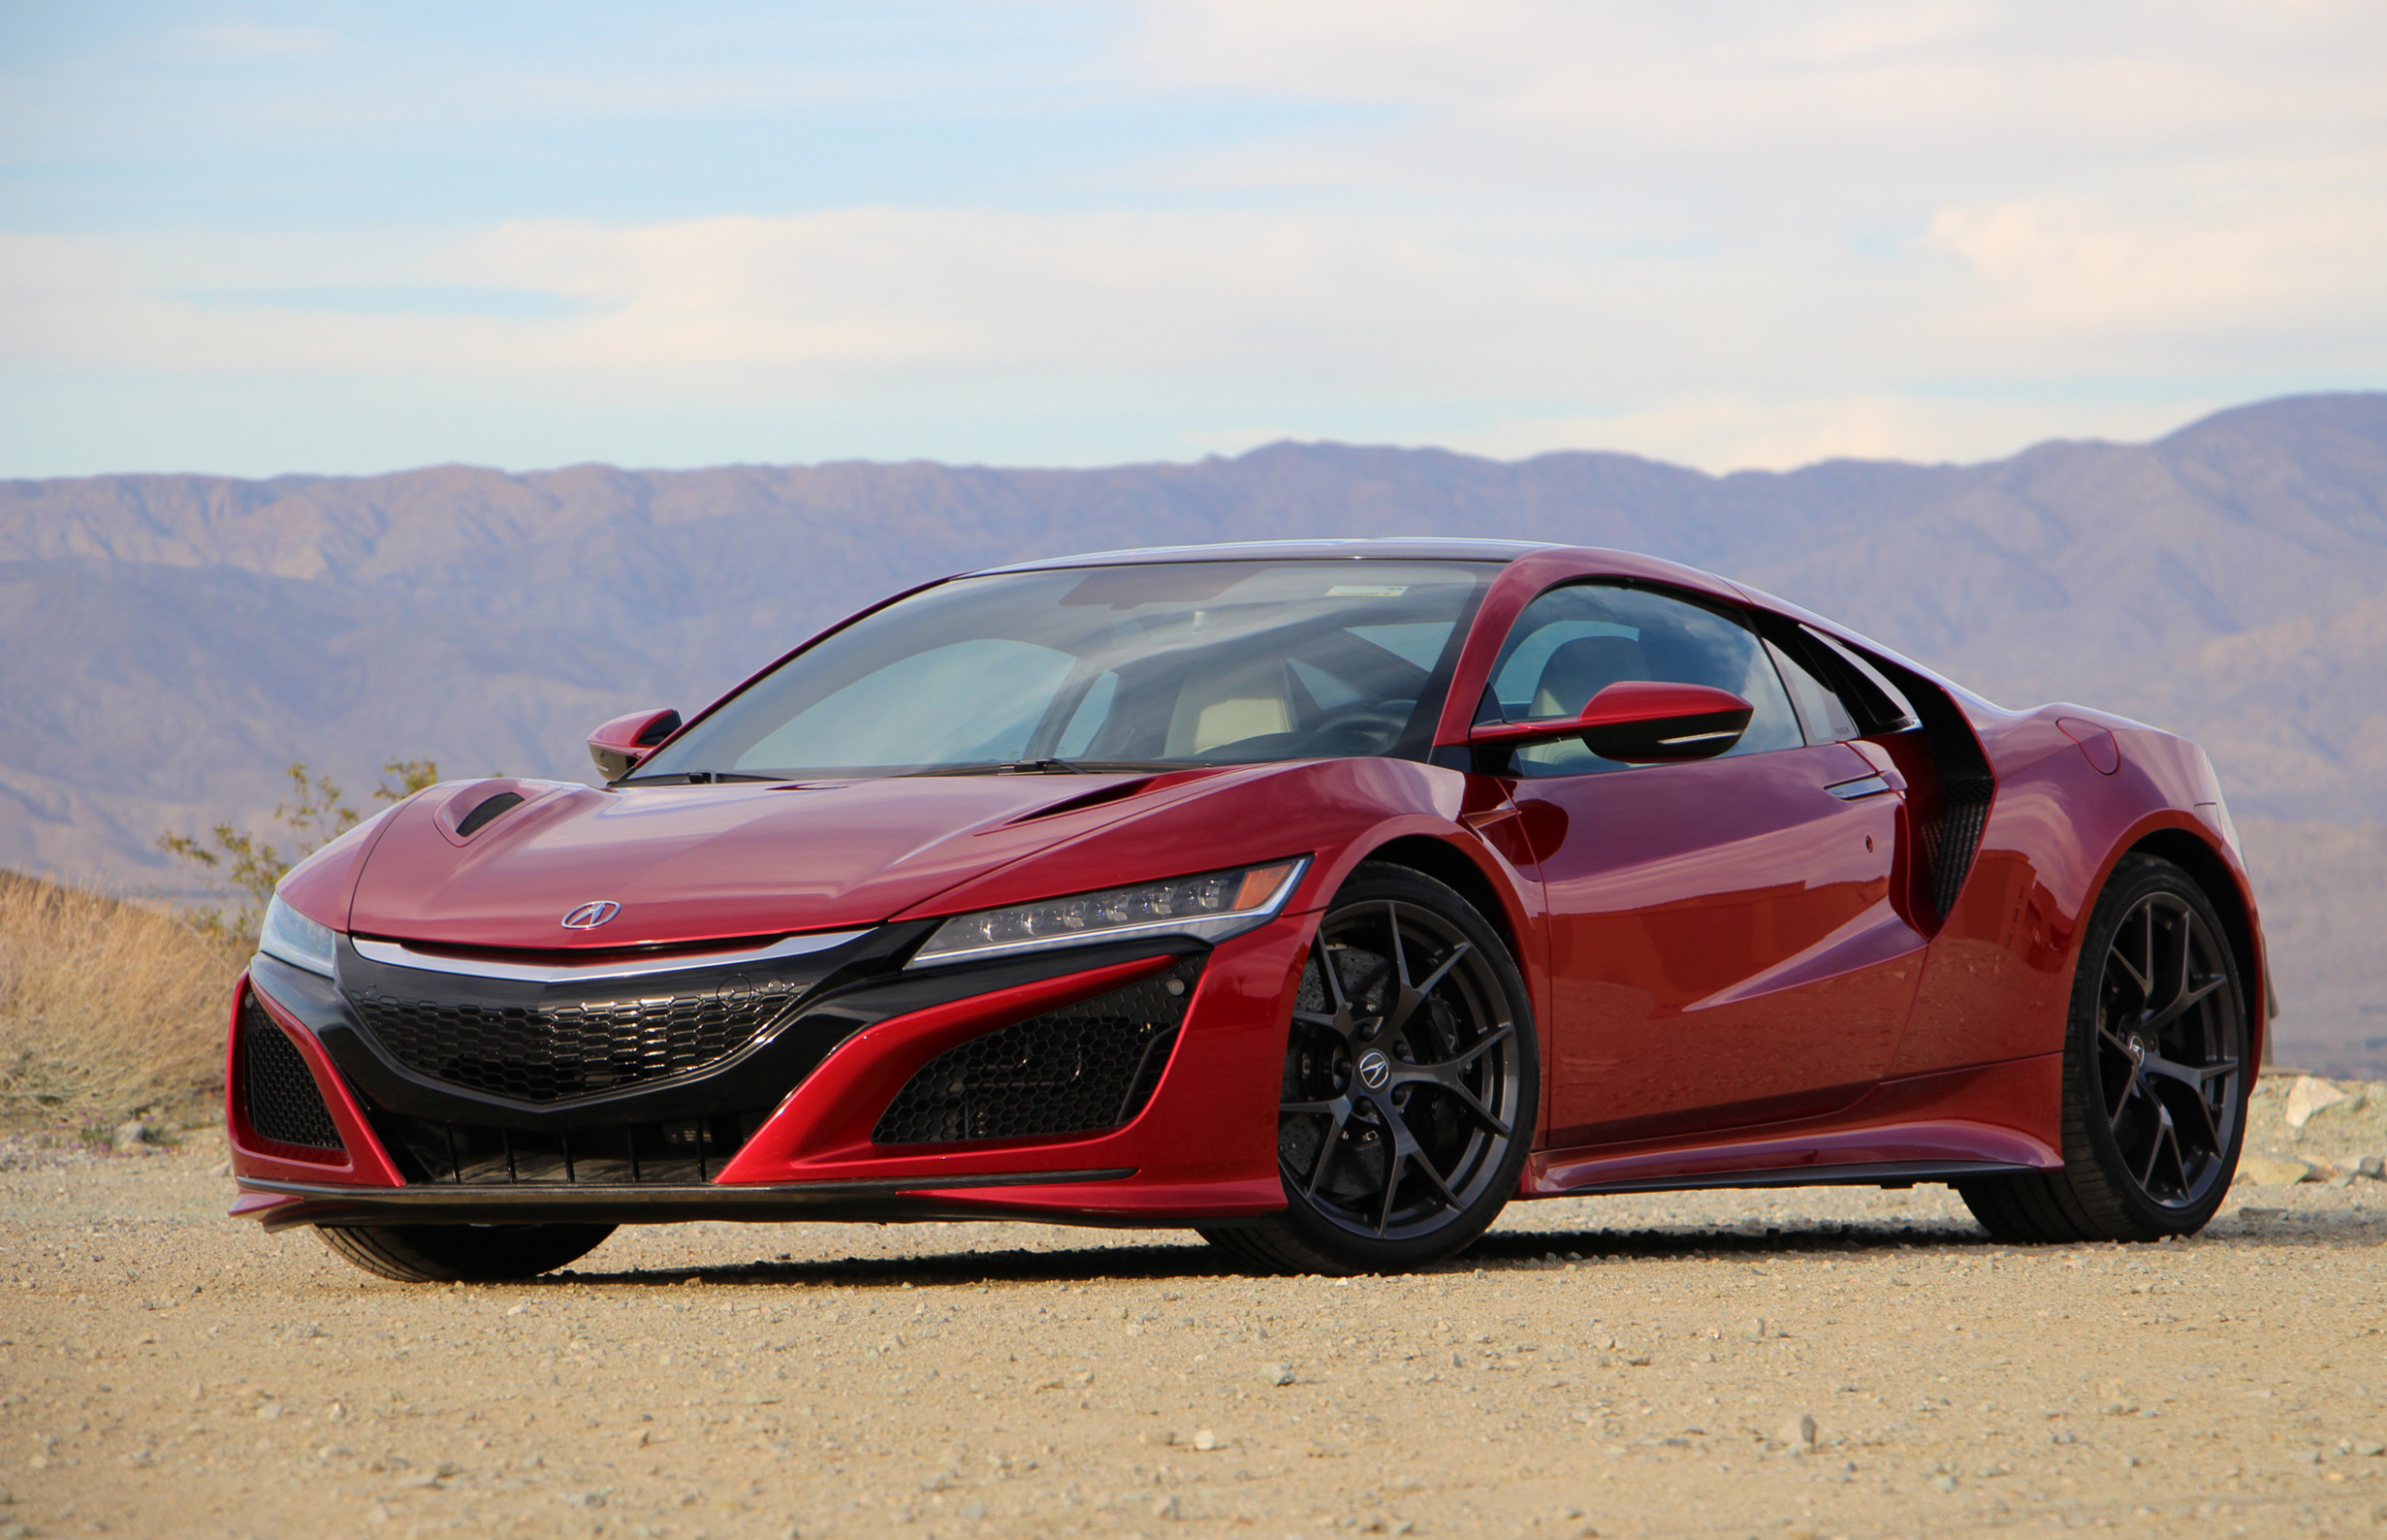 Acura NSX 12 - View Specs, Prices, Photos & More | Driving - honda nsx 2020 price philippines